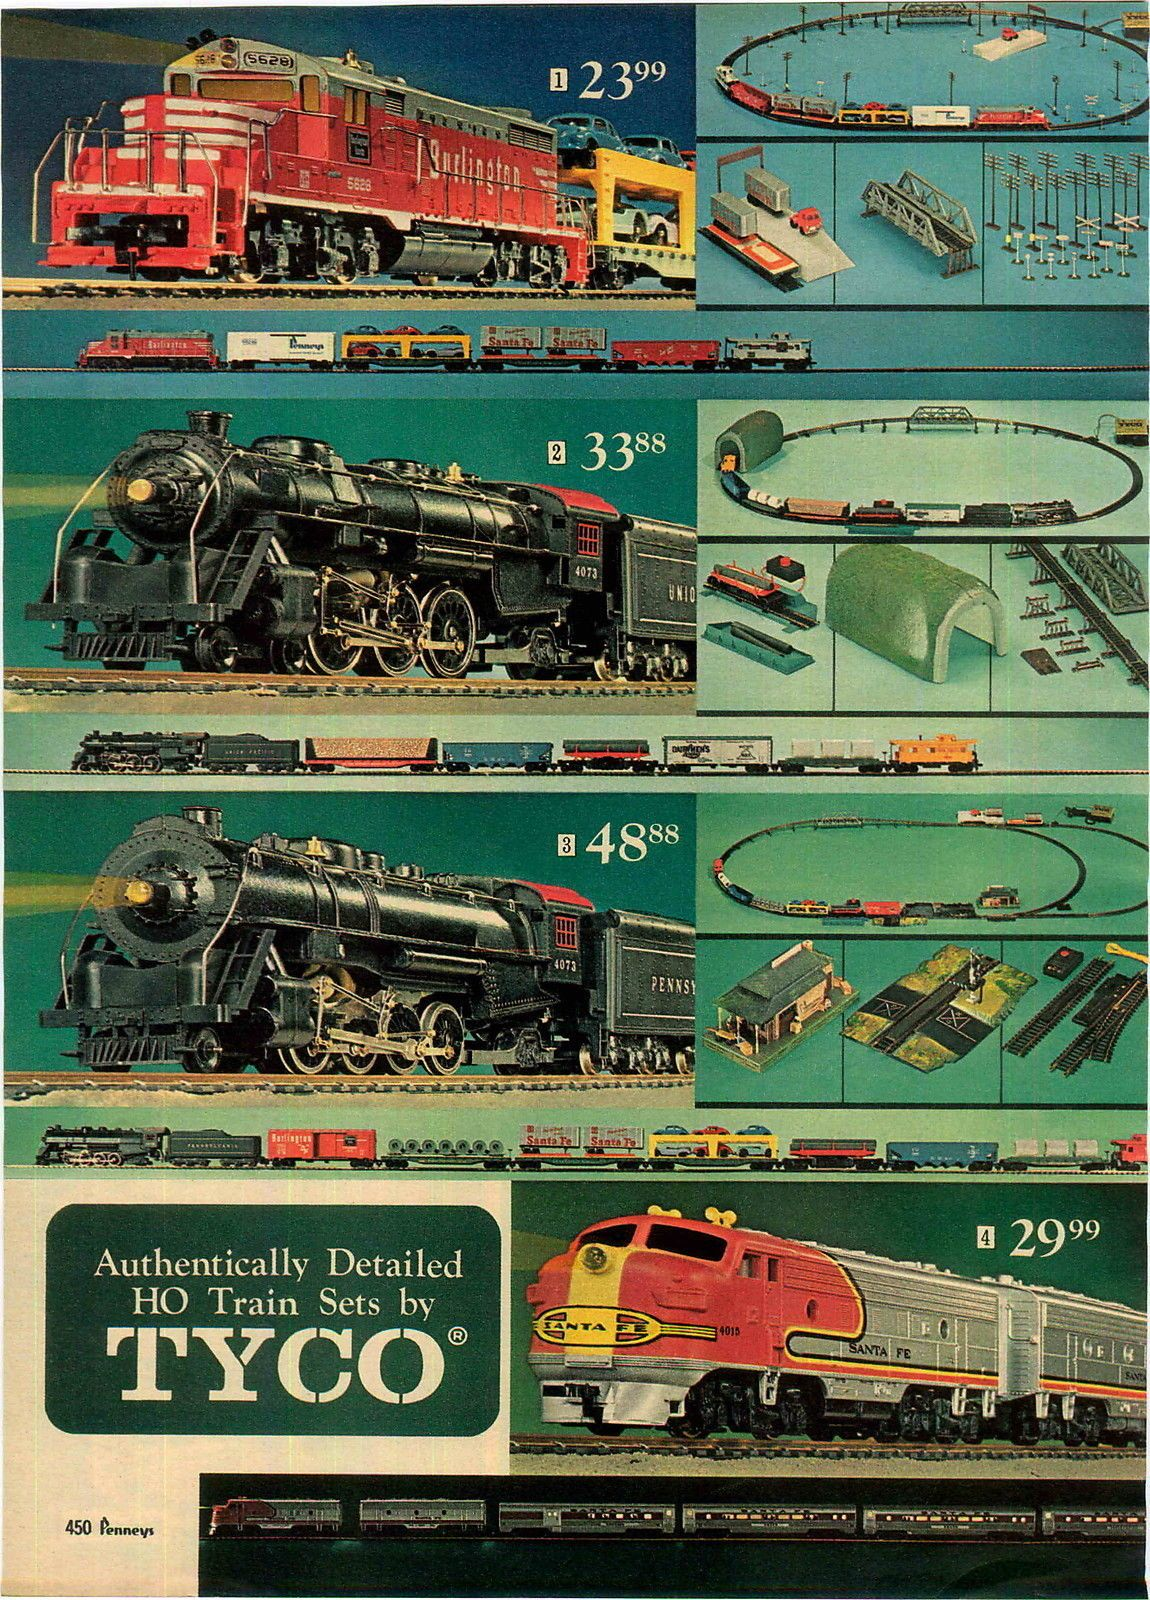 Tyco Trains Wiring Diagram Library V23234 A1001 X036 1969 Advert 3 Pg Toy Electric Train Set Railroad Empire Pacific Lionel Ebay